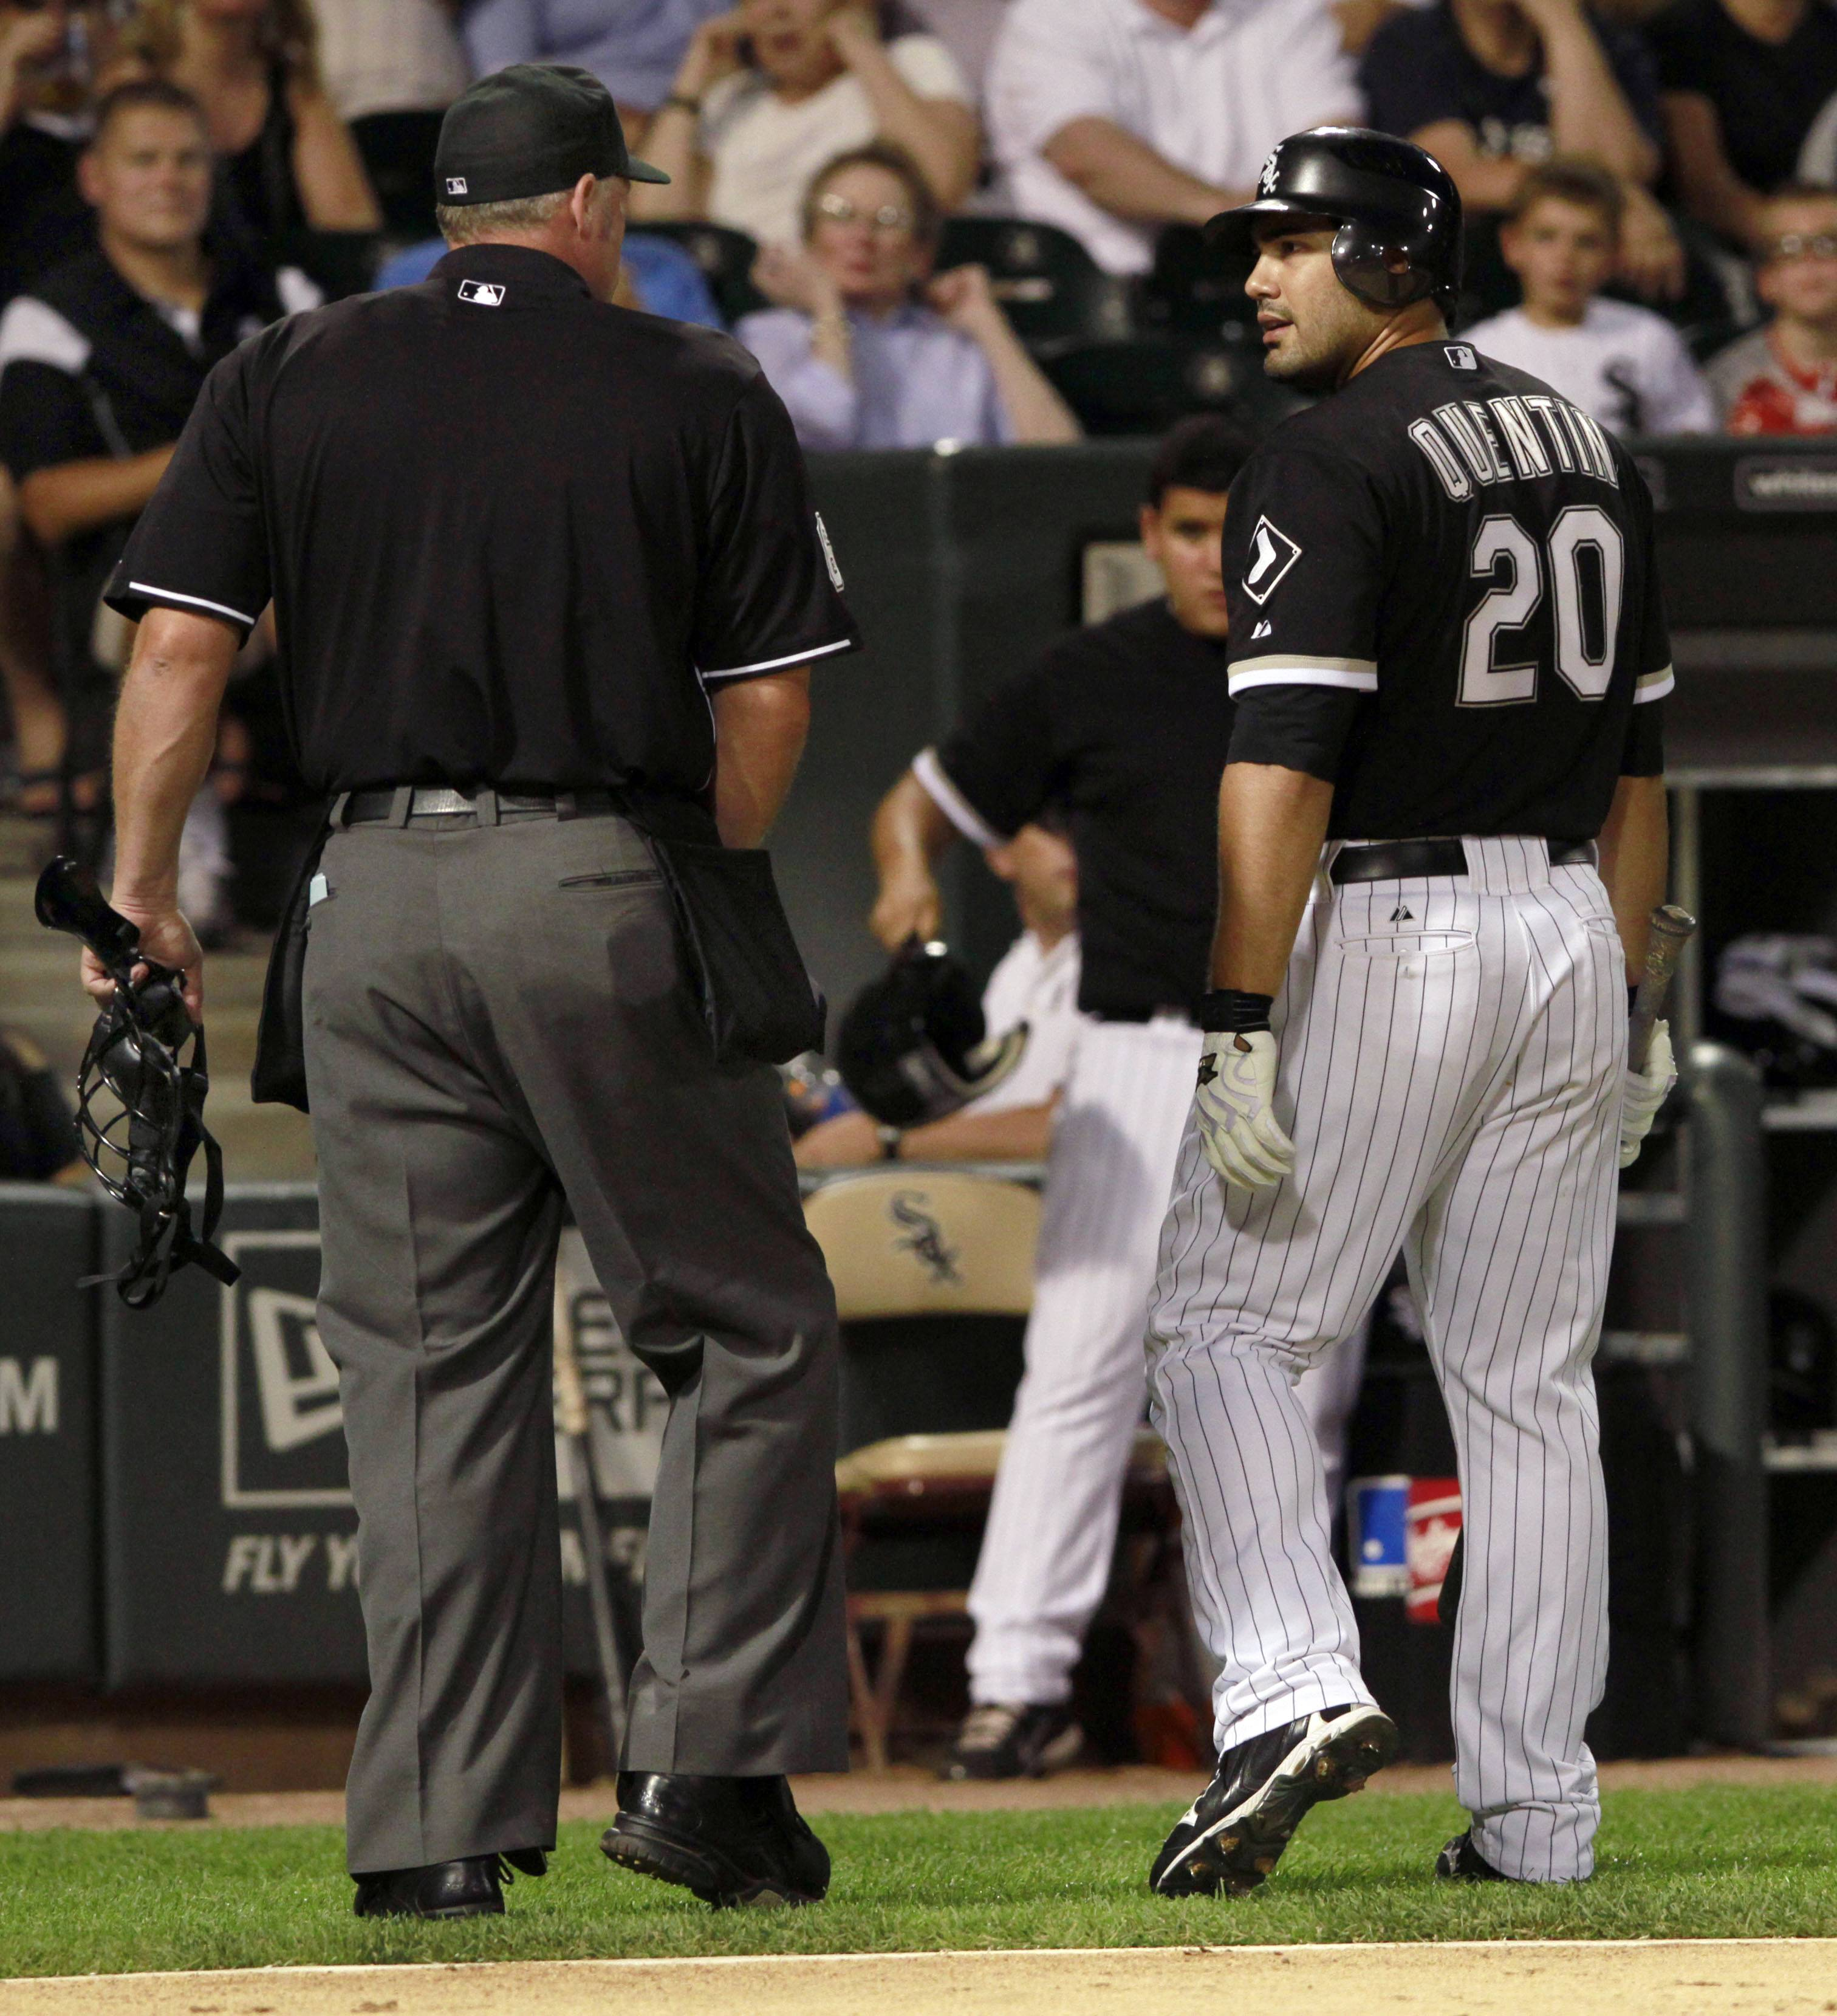 Teixeira powers Yankees to win over White Sox